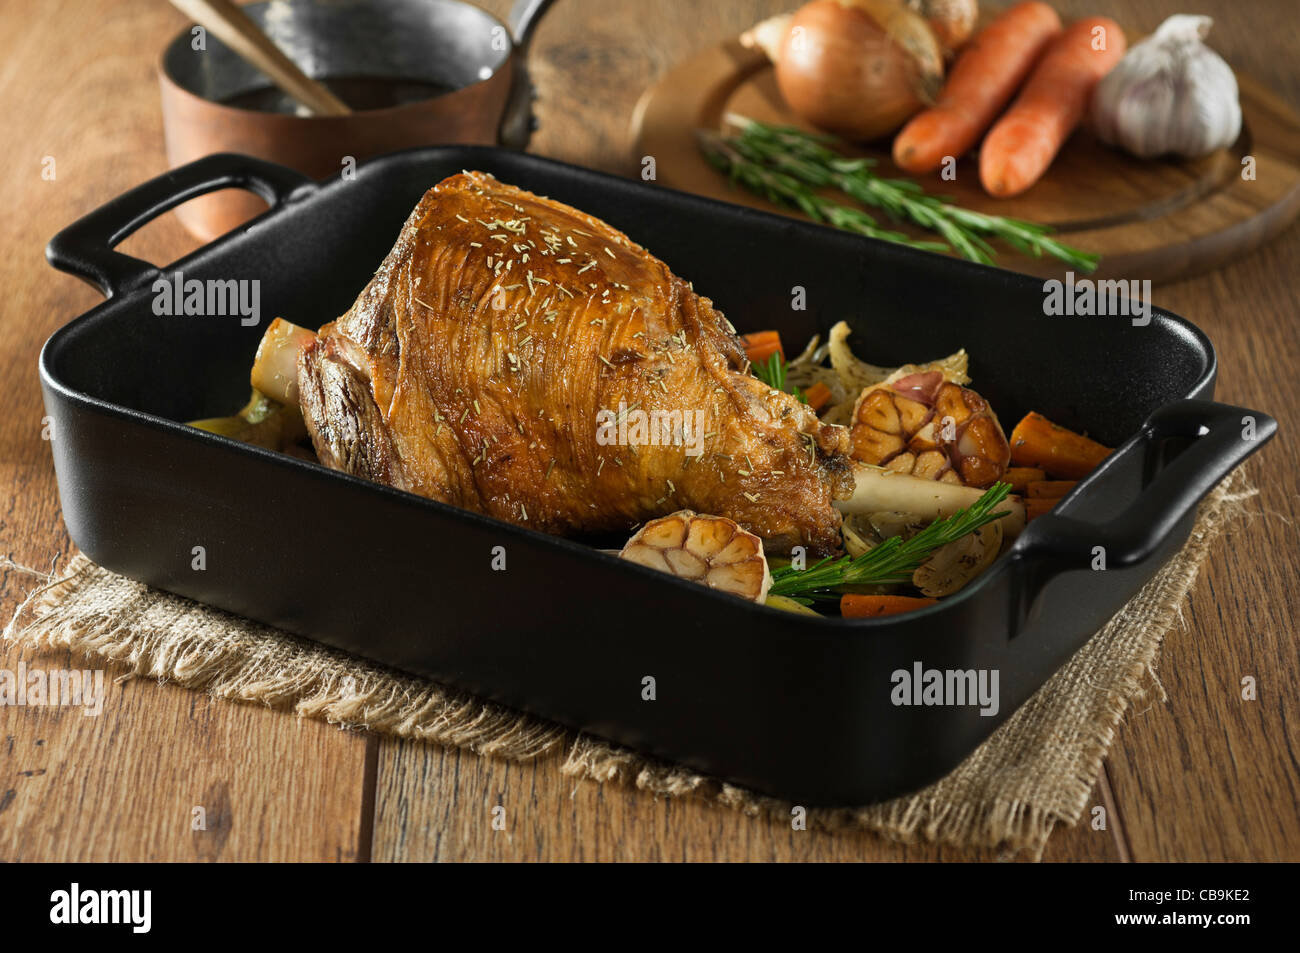 Roast leg of lamb with garlic and rosemary in a roasting tray - Stock Image